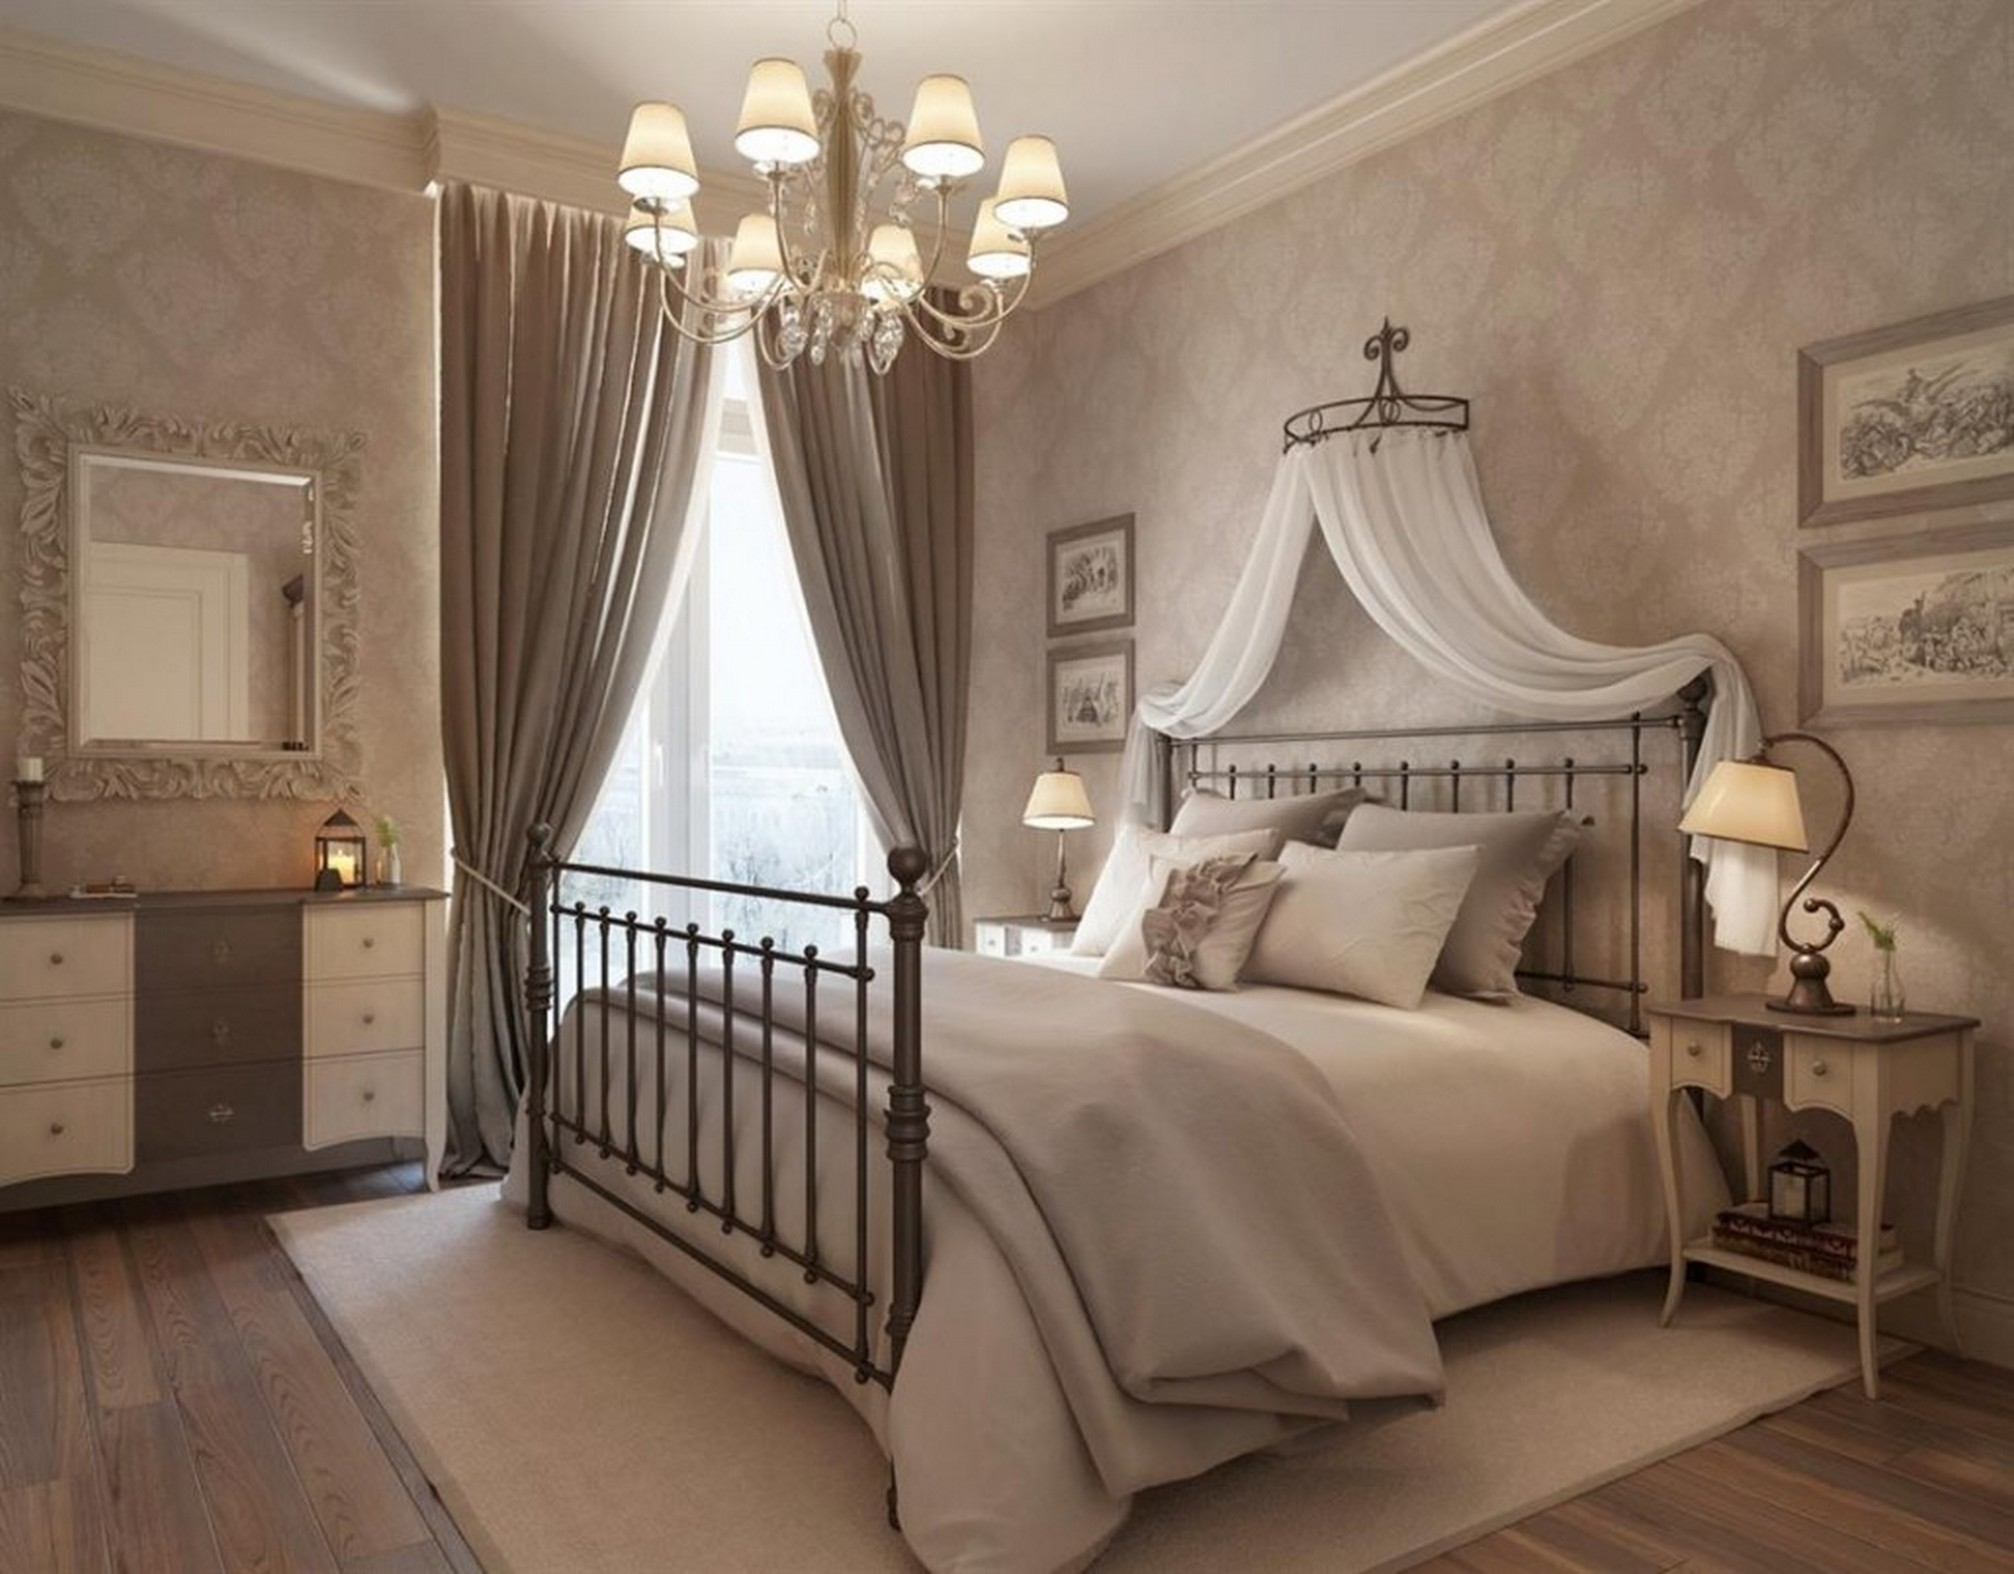 5 stylish vintage bedroom ideas this lady blogs for Bedroom inspiration vintage